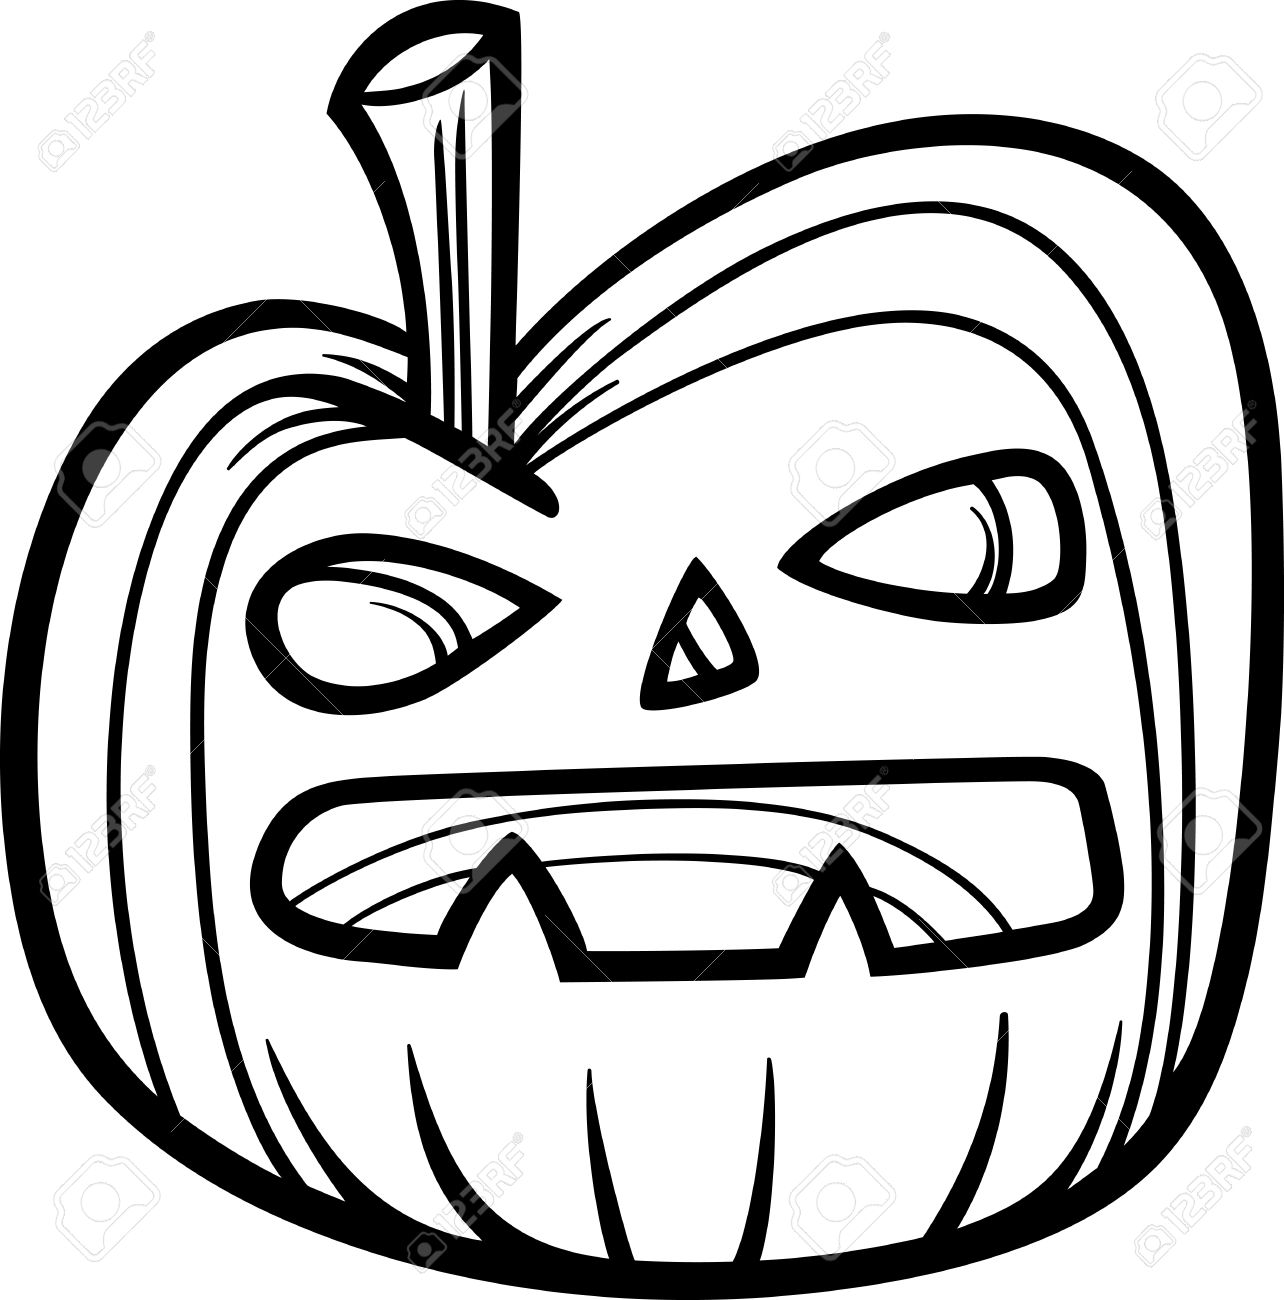 black and white cartoon illustration of spooky halloween pumpkin rh 123rf com black and white pumpkin pie clipart clipart pumpkin black and white